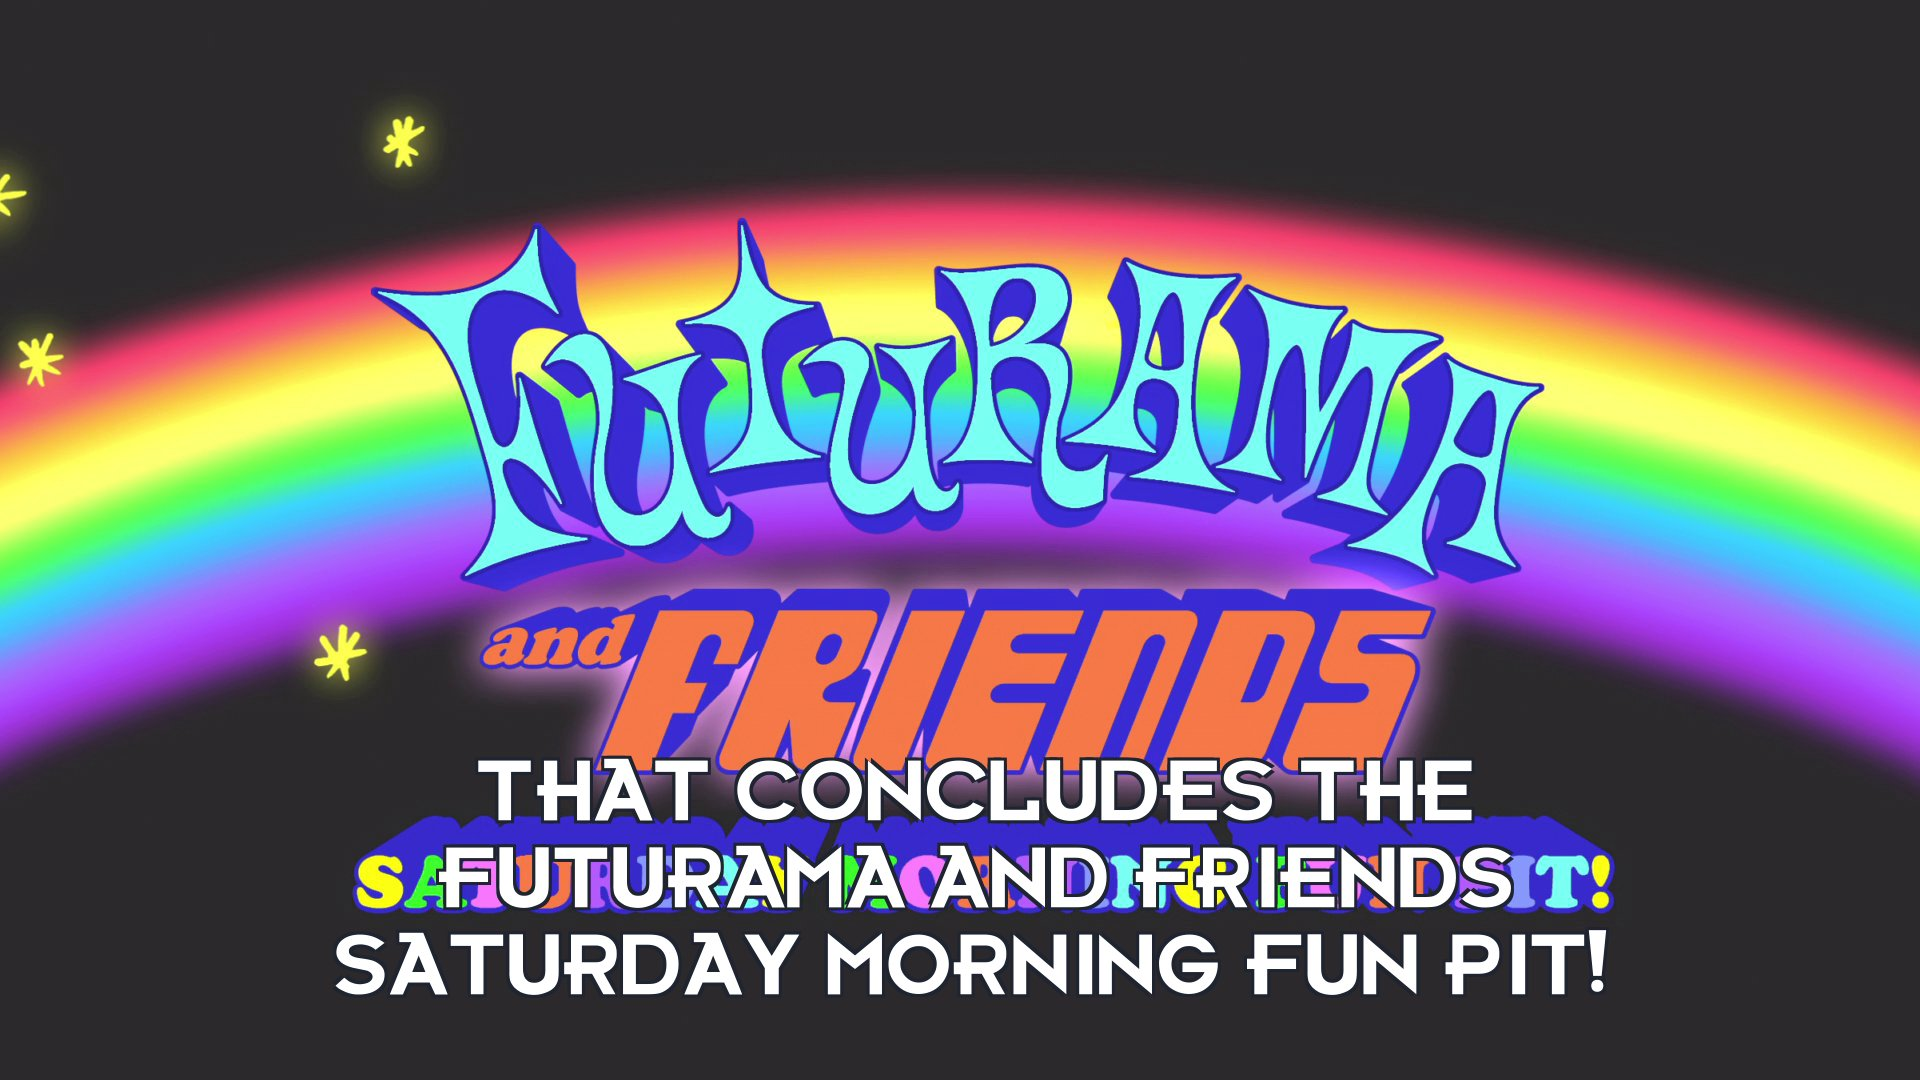 Announcer: That concludes the Futurama and Friends Saturday Morning Fun Pit!